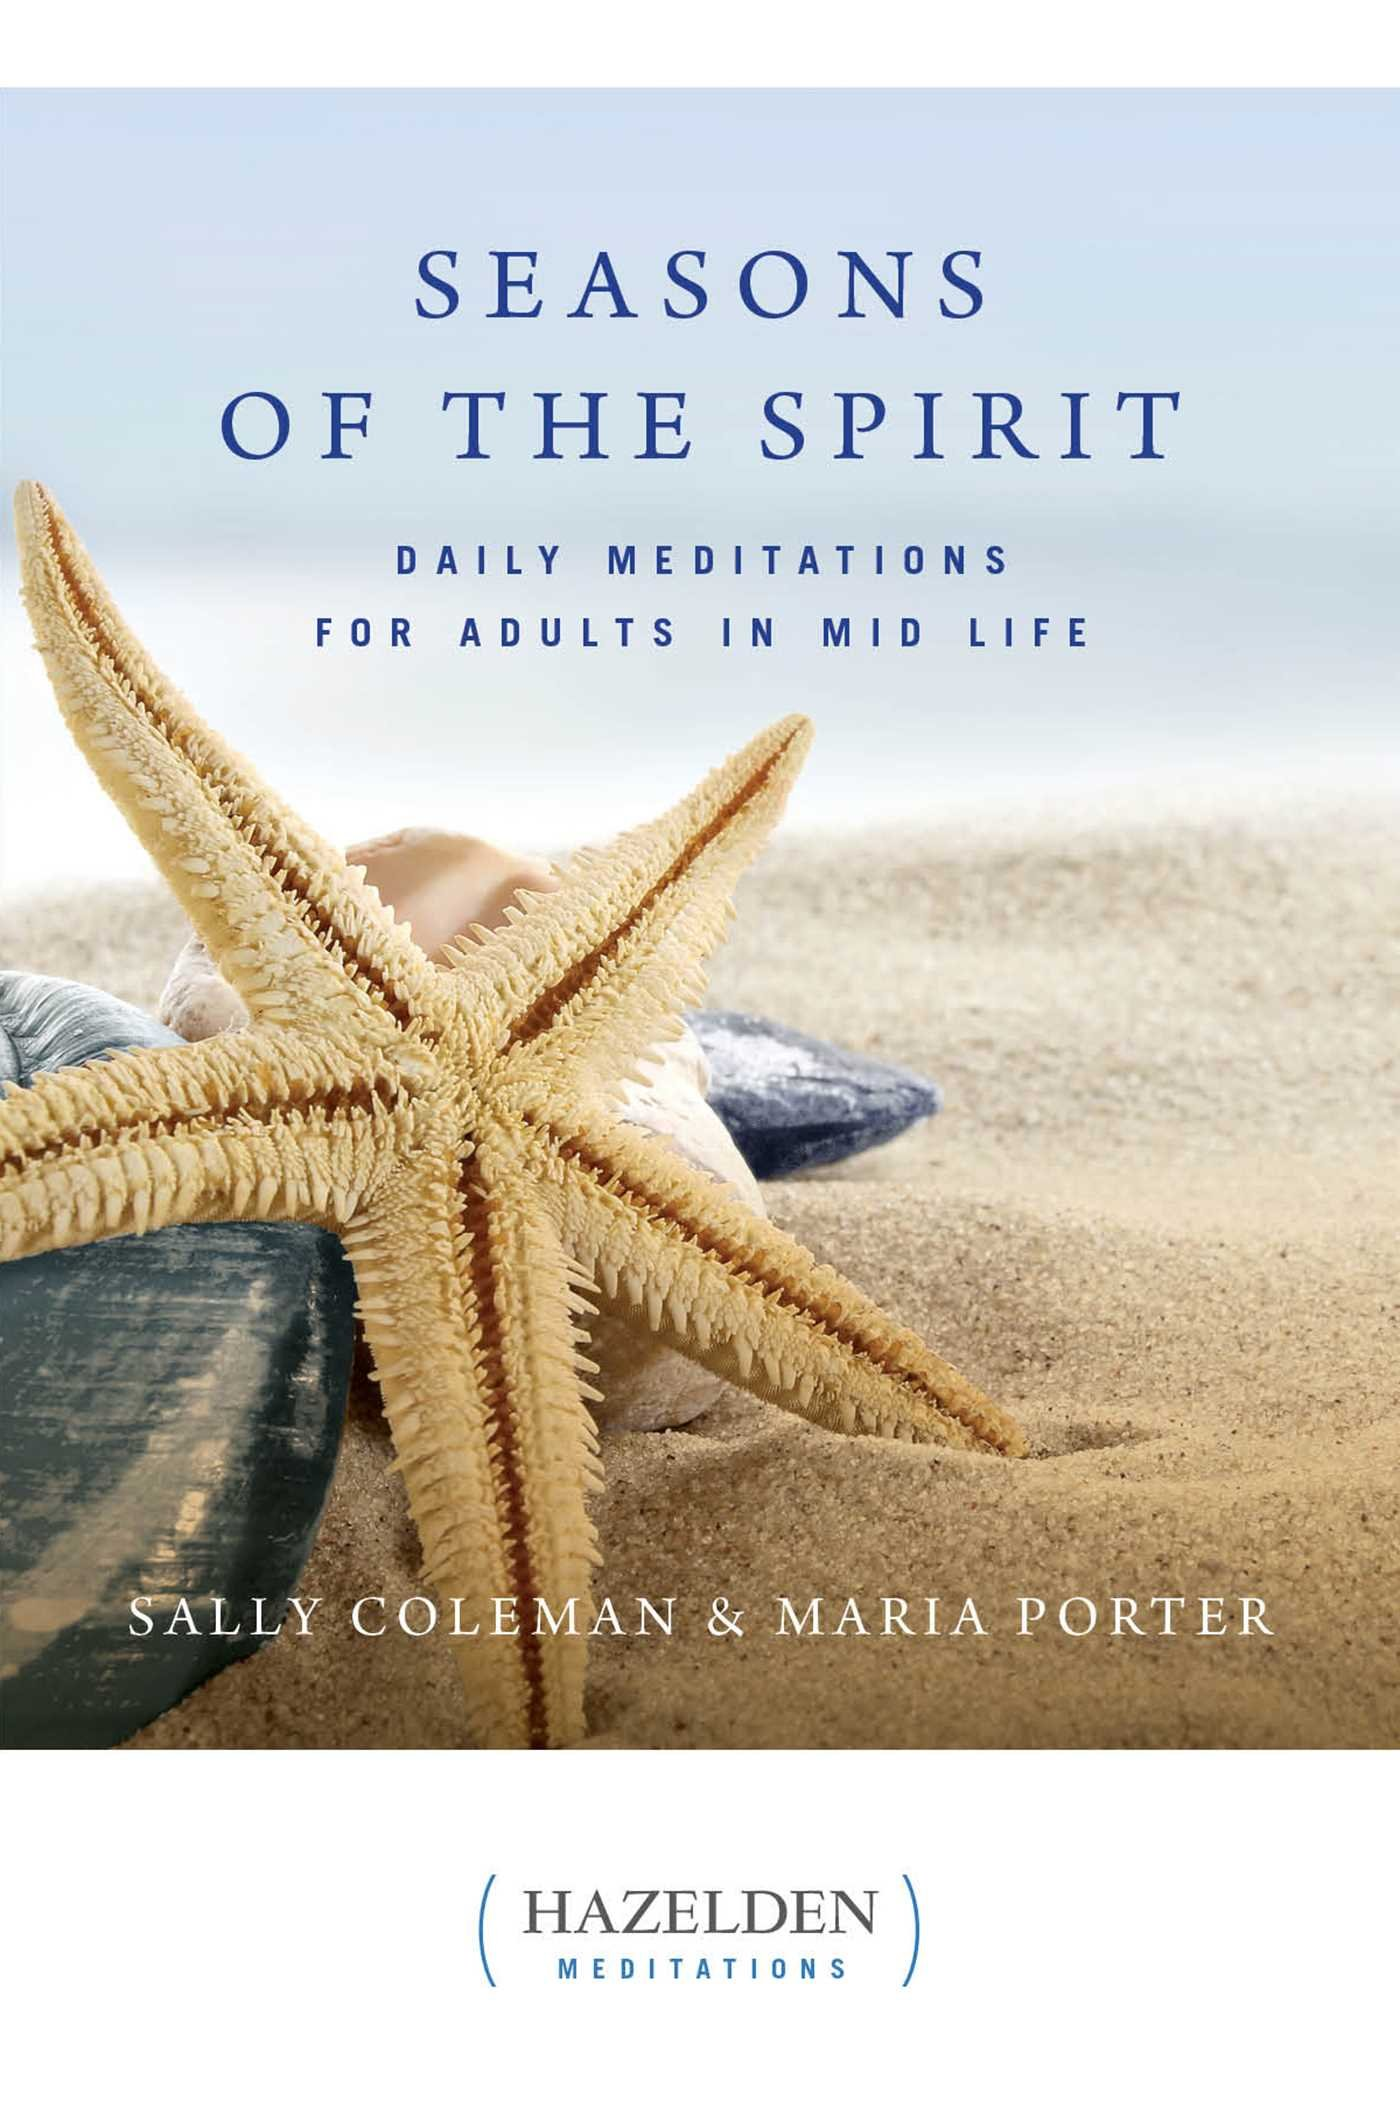 Seasons of the Spirit: Daily Meditations for Adults in Mid-Life (Hazelden Meditations)